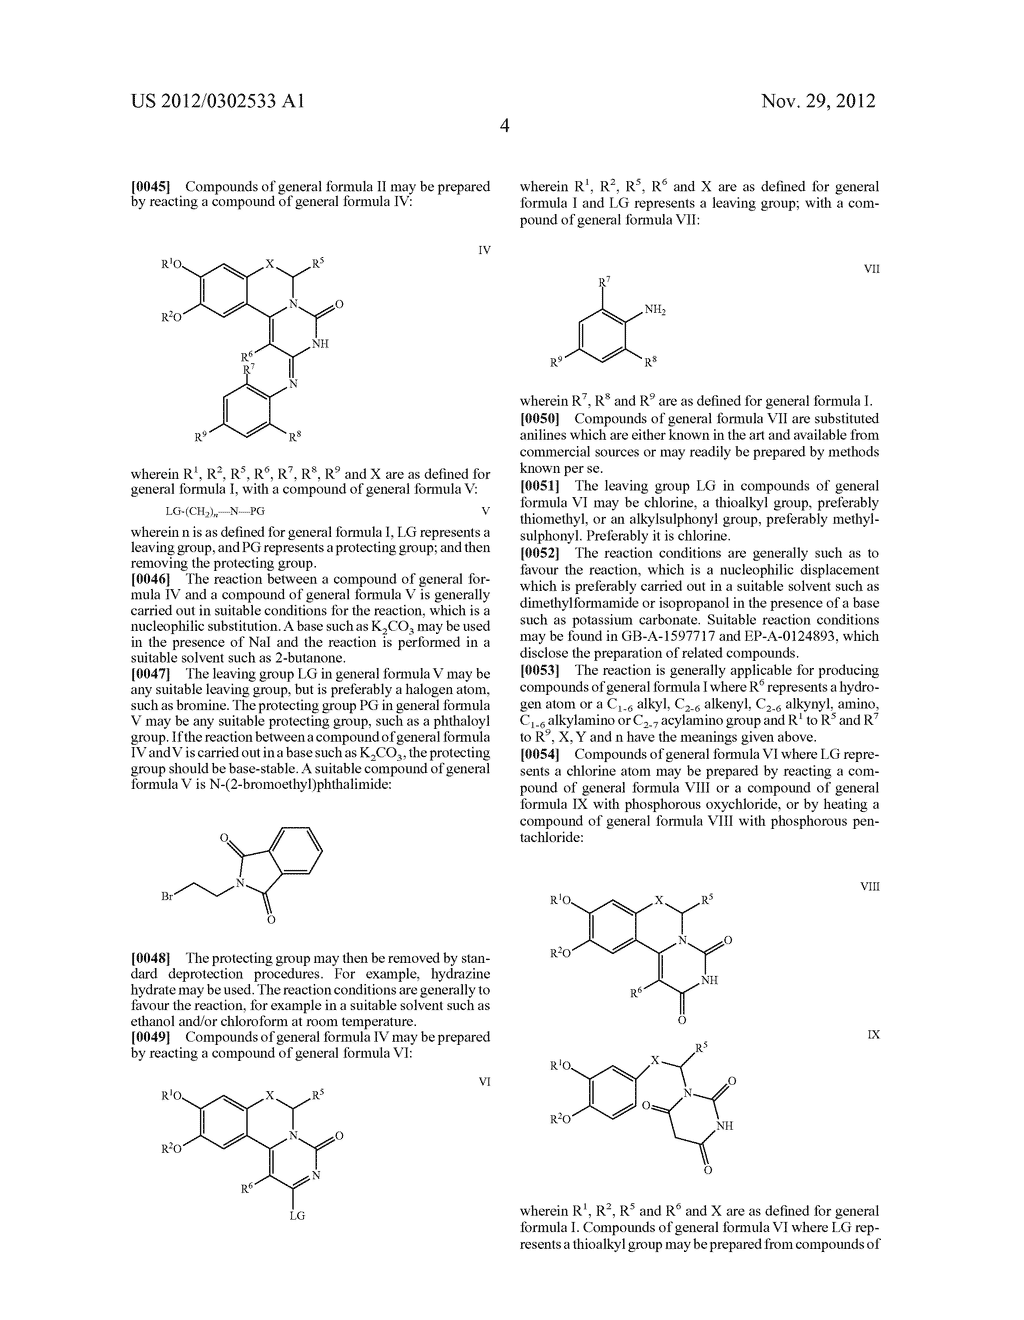 DERIVATIVES OF PYRIMIDO [6,1-A] ISOQUINOLIN-4-ONE - diagram, schematic, and image 10